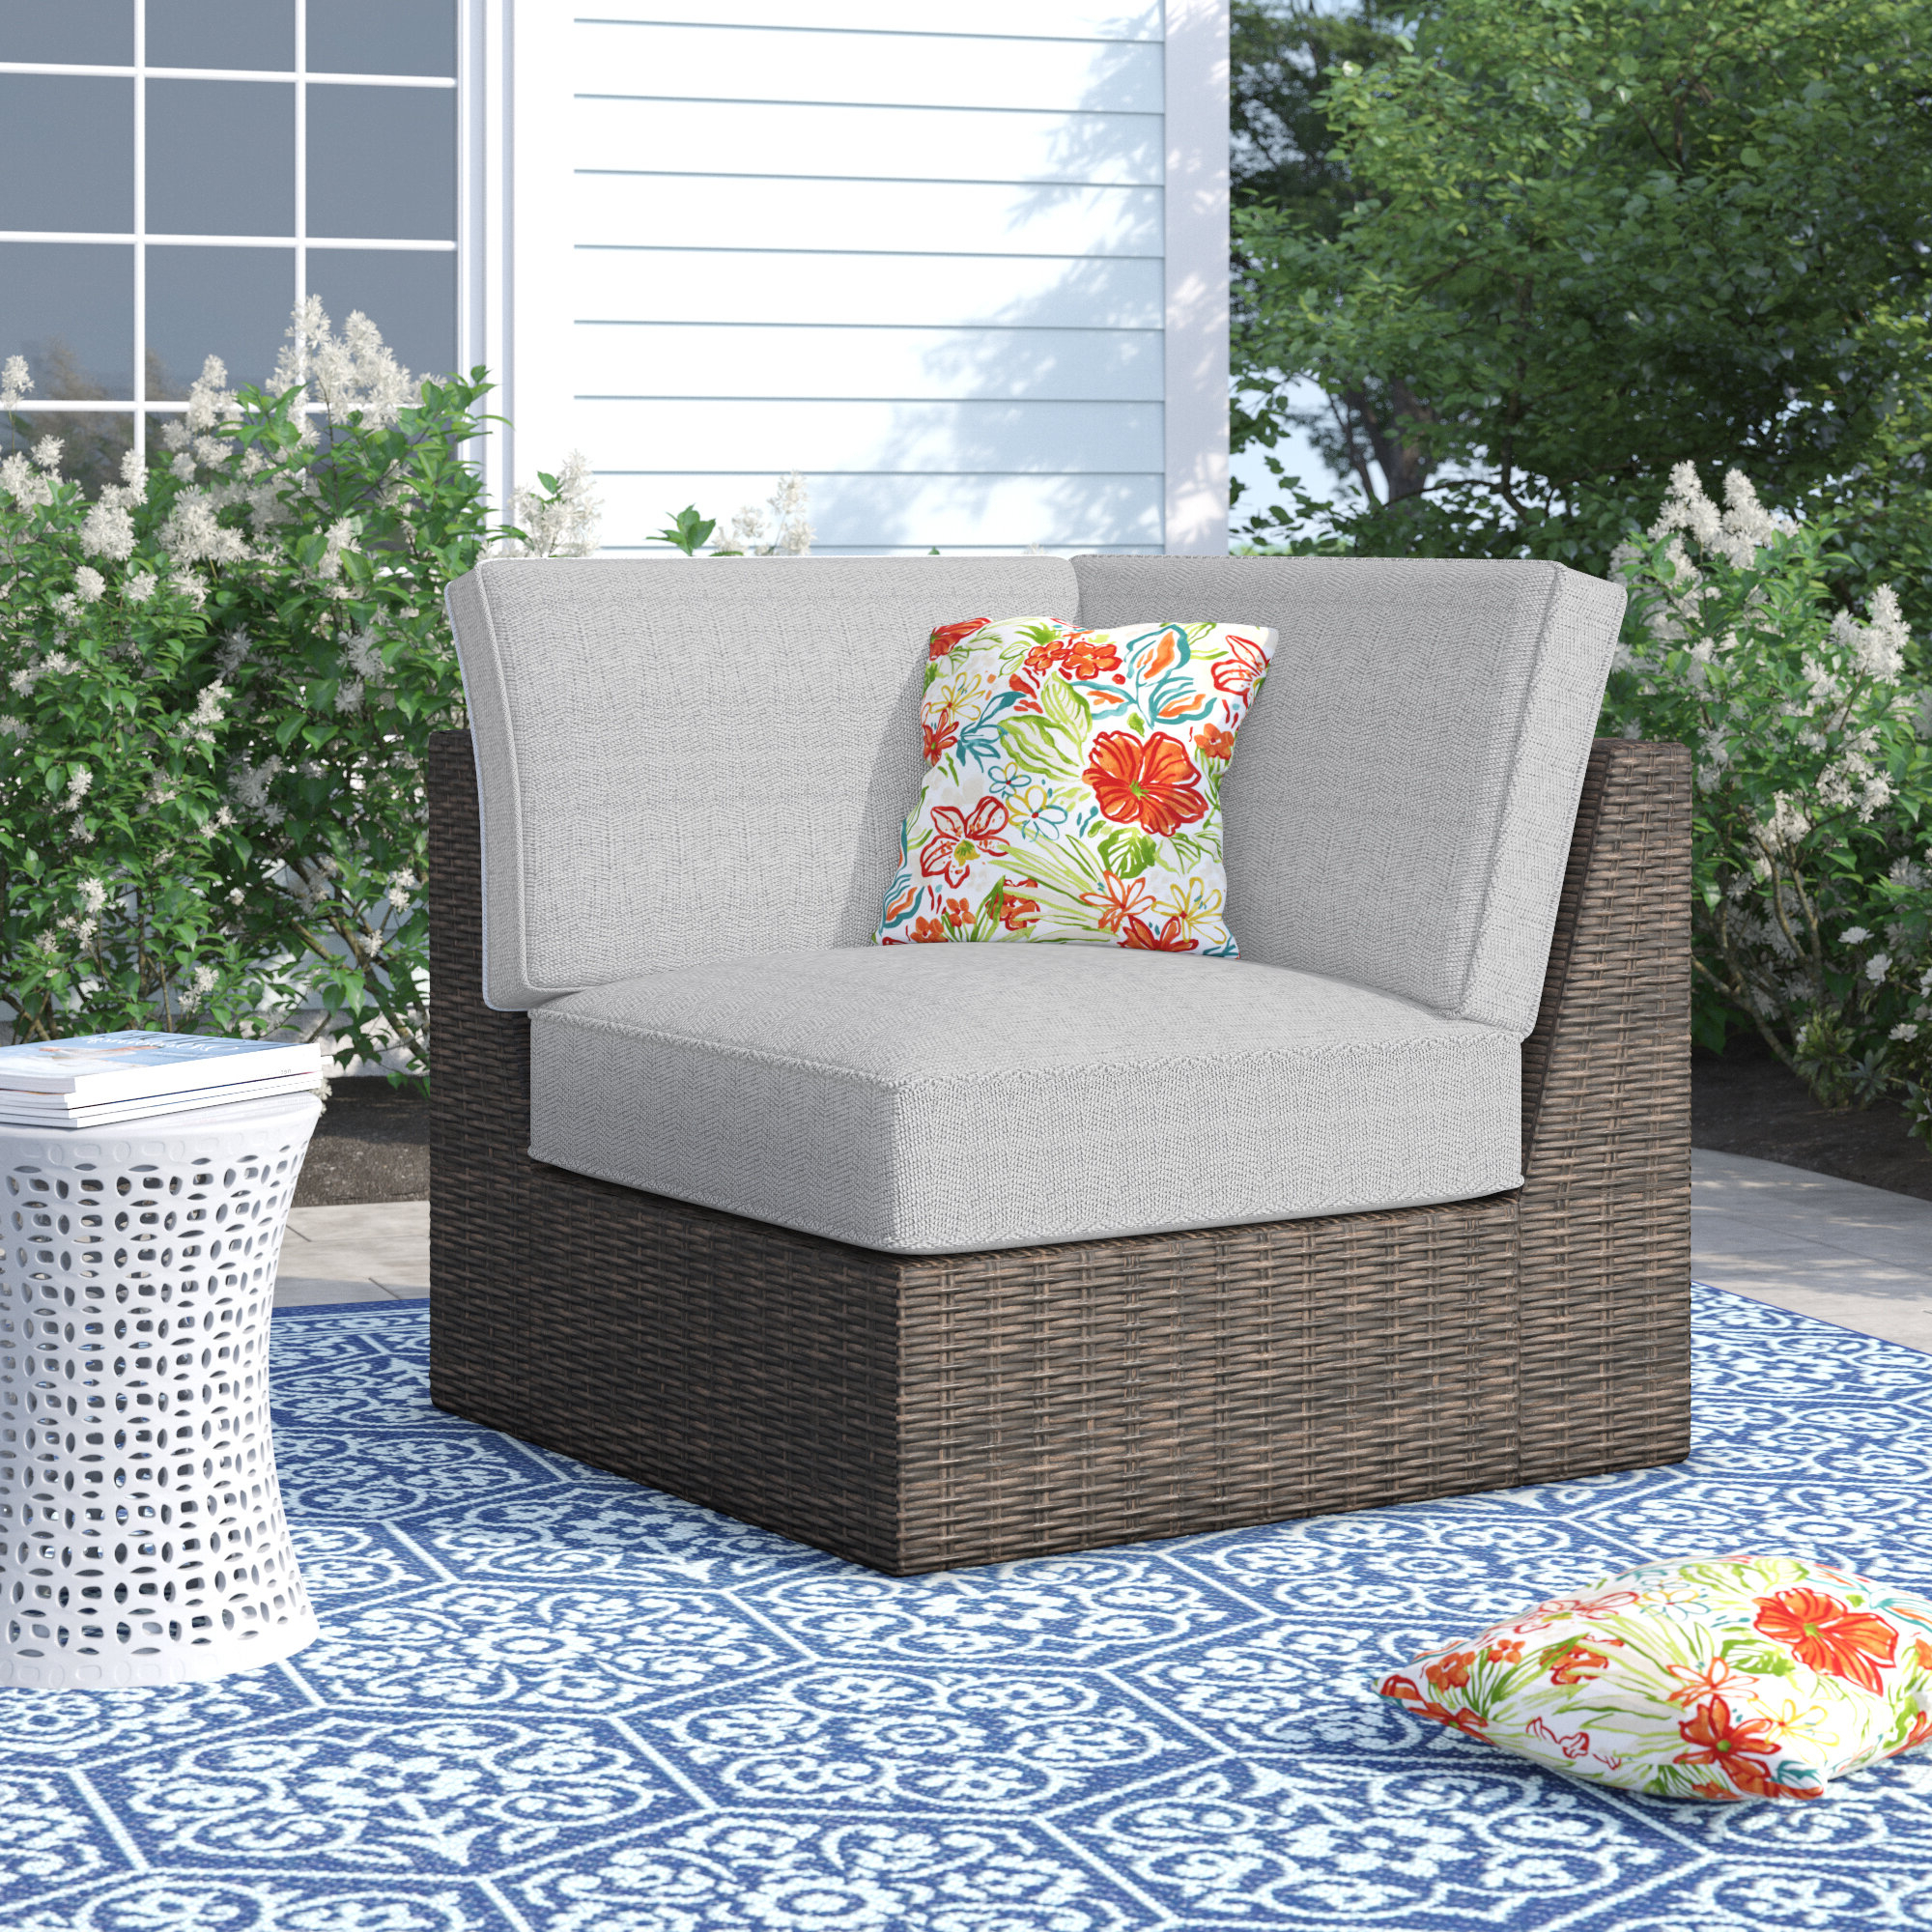 Well Known Oreland Patio Sofas With Cushions For Oreland Patio Chair With Cushions (View 18 of 20)